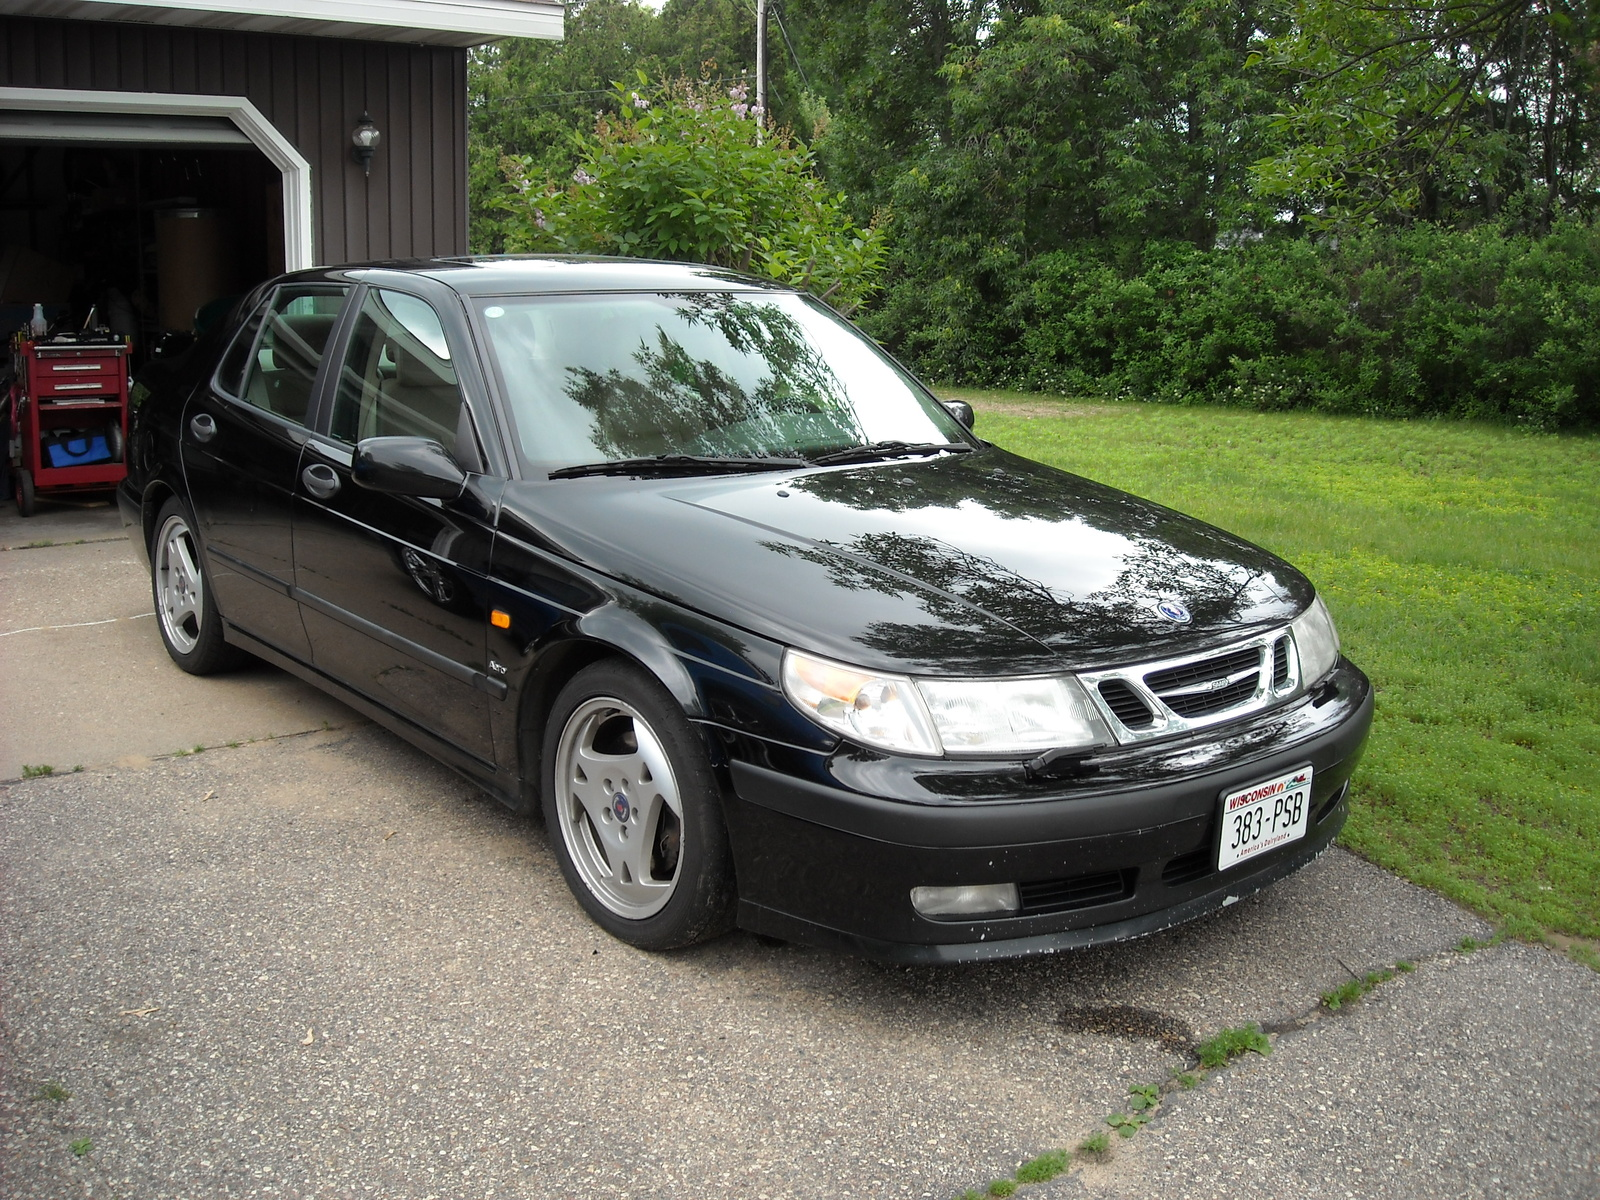 SAAB 9-5 AERO - cars catalog, specs, features, photos, videos, review,